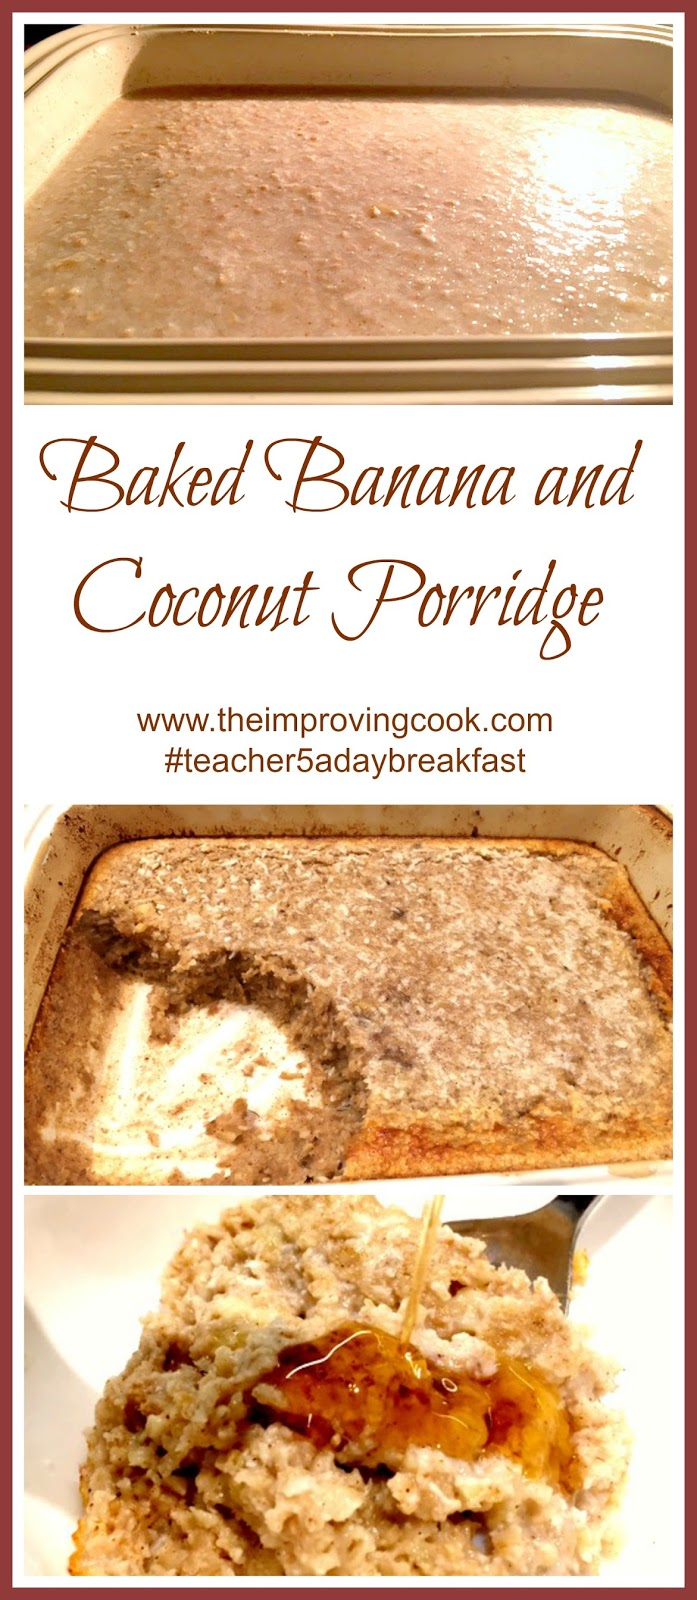 The Improving Cook- Baked Banana and Coconut Porridge